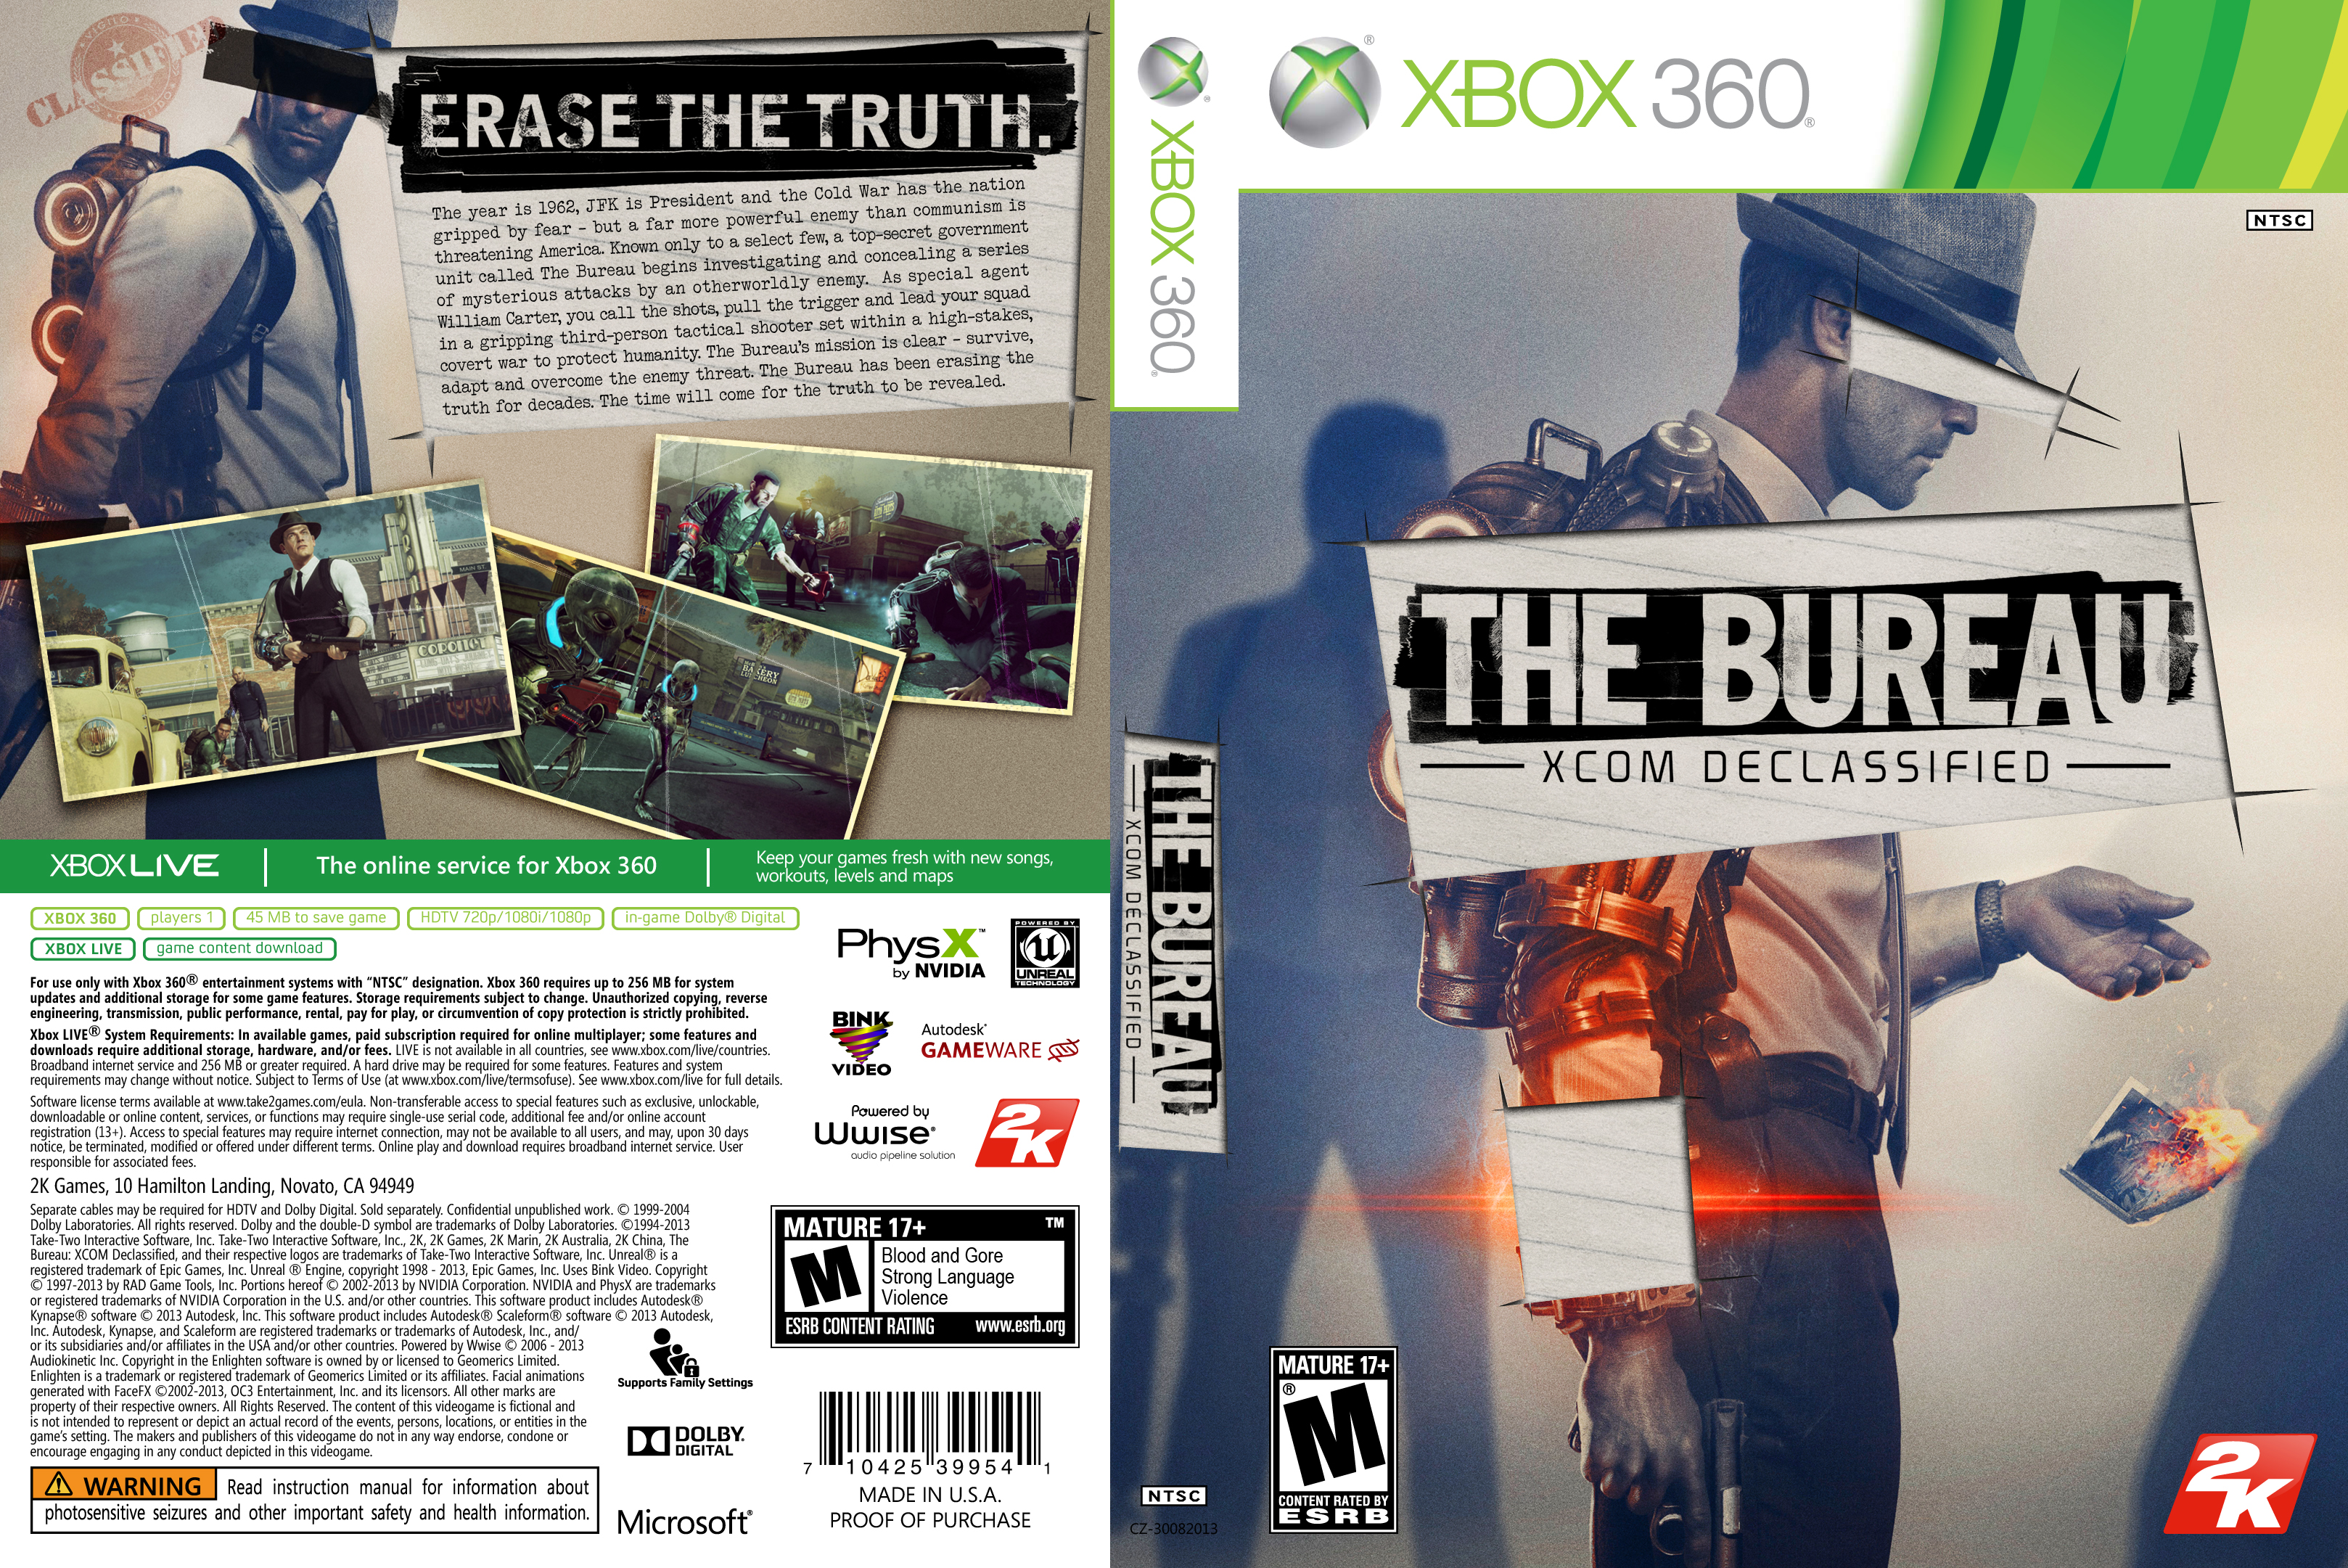 Capa The Bureau Xcom Declassified Xbox 360